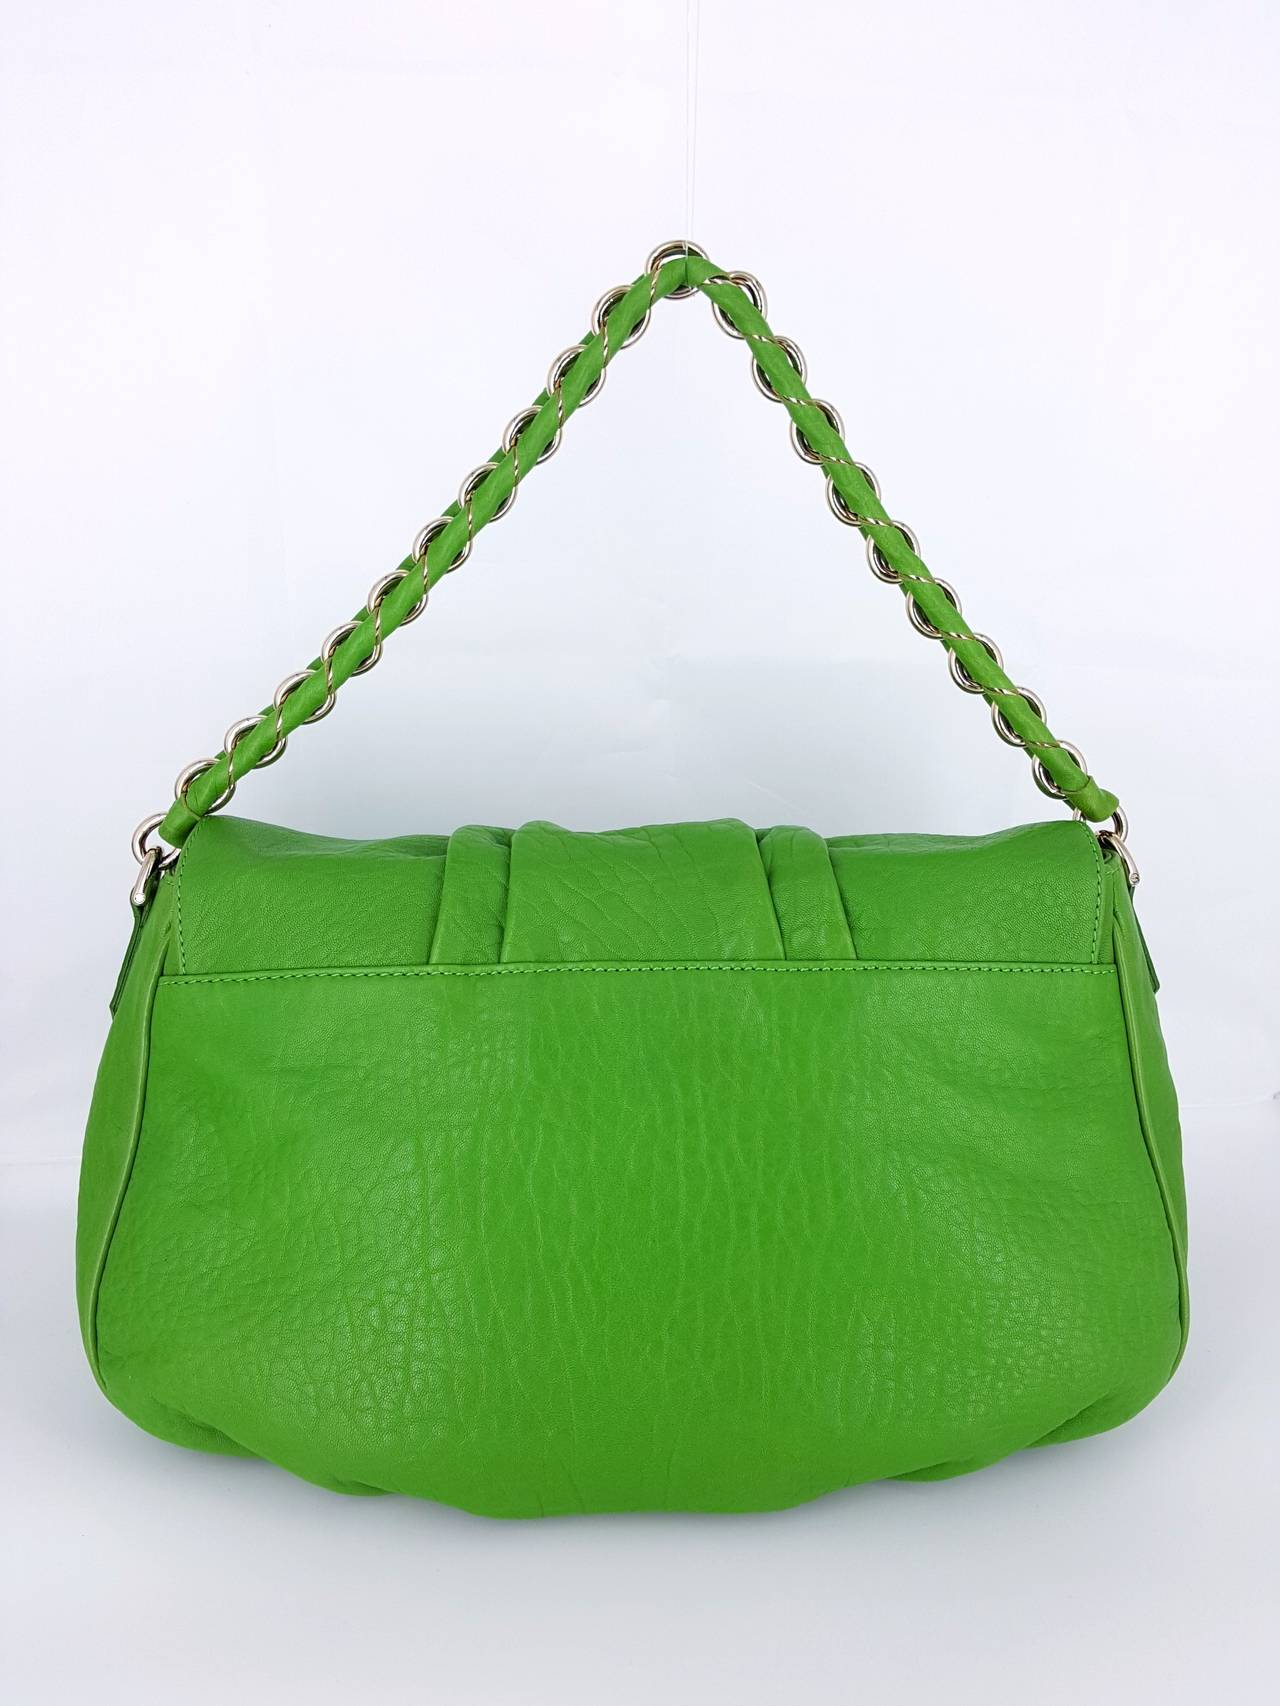 What a great color Fendi in Kelly Green Leather and silver hardware.  The large silver FF magnetic closure and metal on the shoulder strap really set this off nicely.  The soft textured leather makes it comfortable to carry.  There is a large